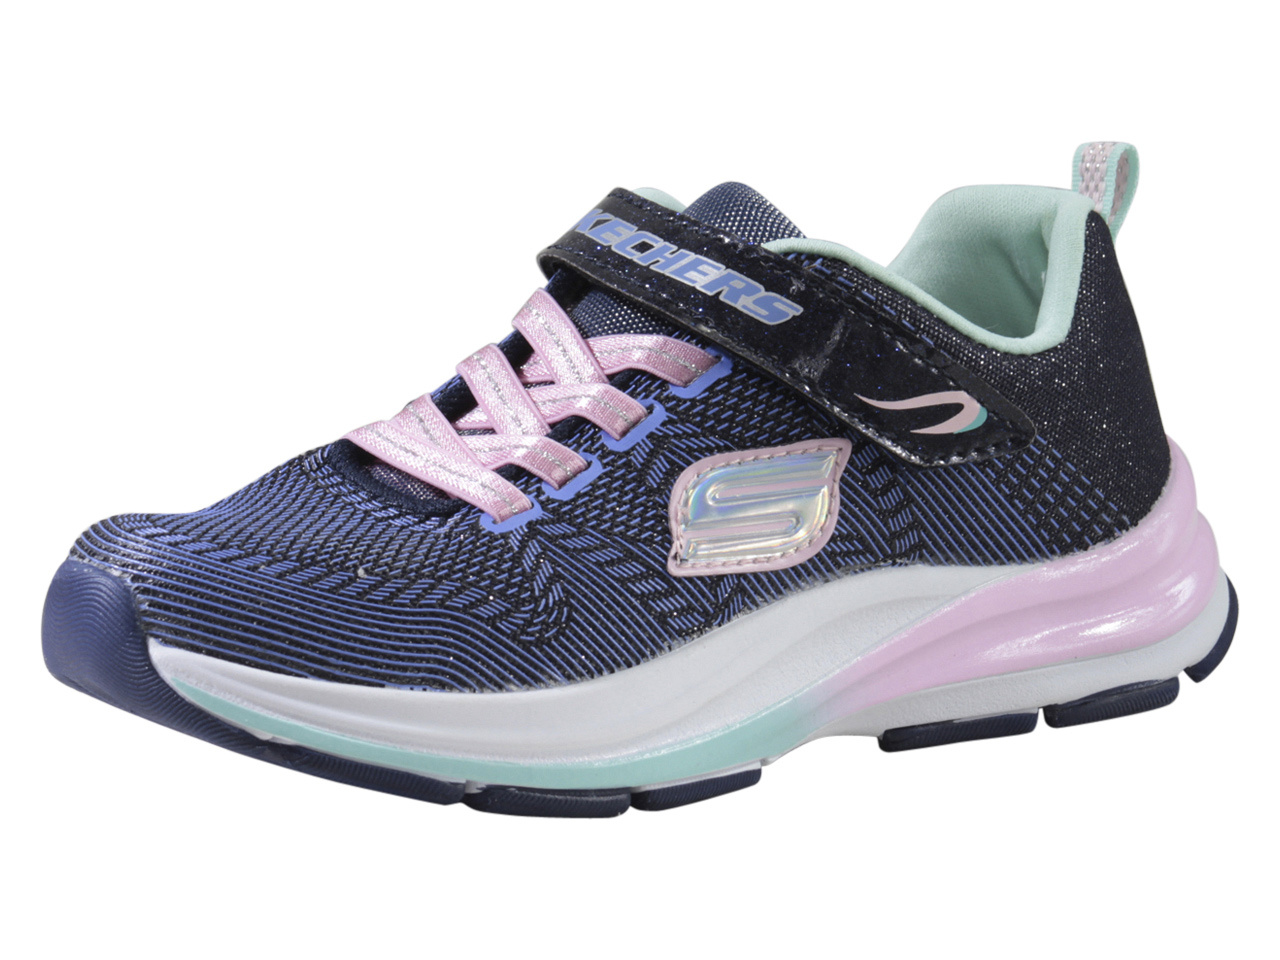 Details about Skechers LittleBig Girl's Double Strides Duo Dash NavyPink Sneakers Shoes